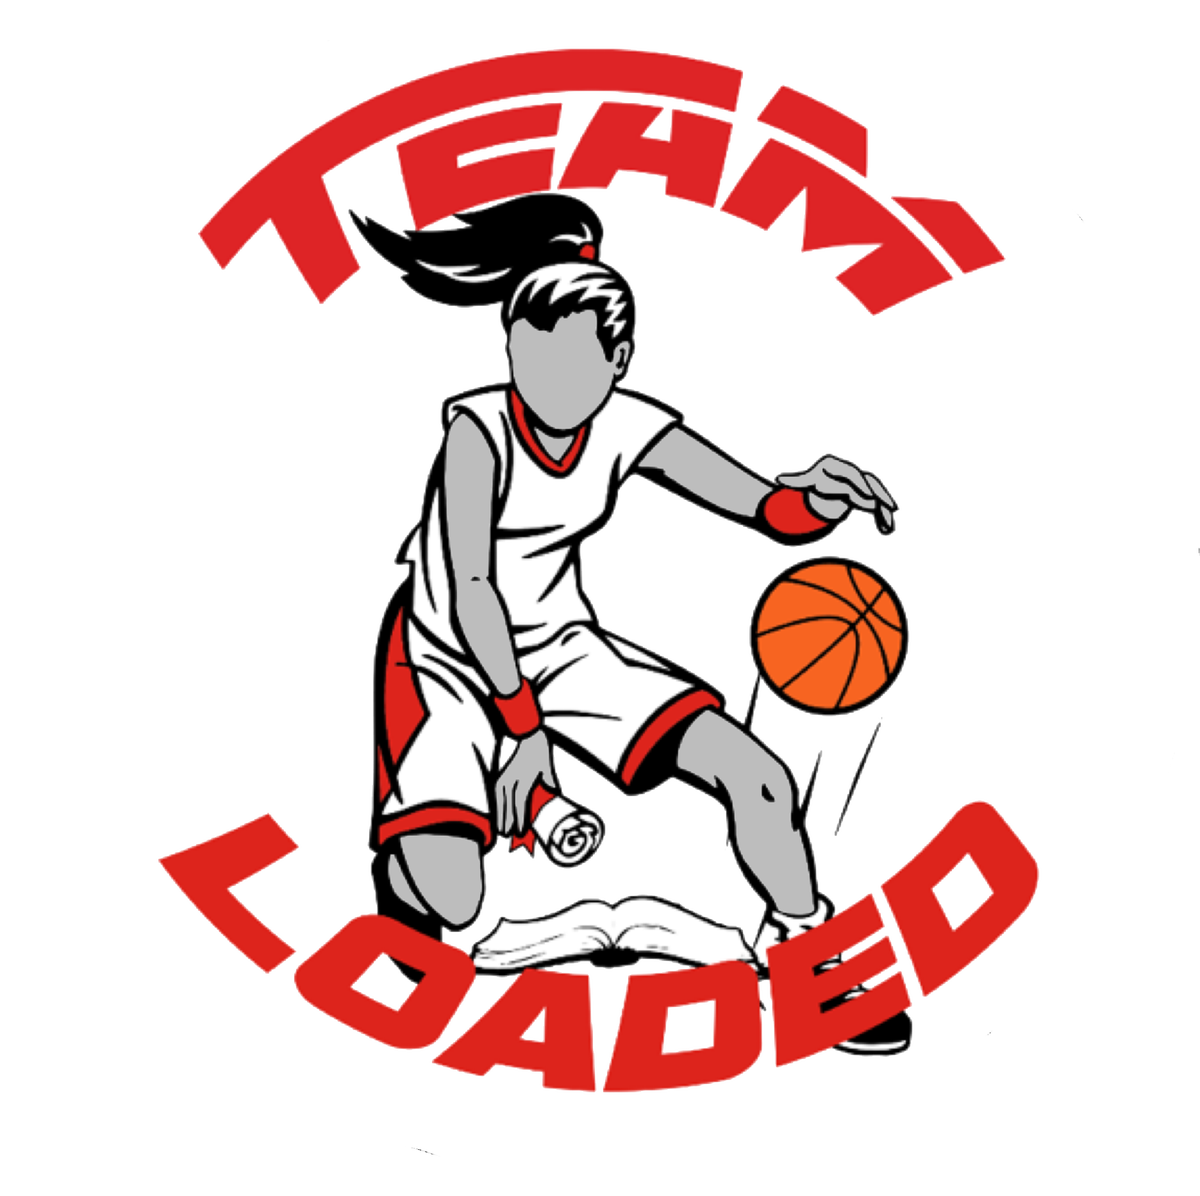 Girl dunking basketball clipart png black and white stock Team Loaded- Building a Dynasty – Insider Exposure png black and white stock